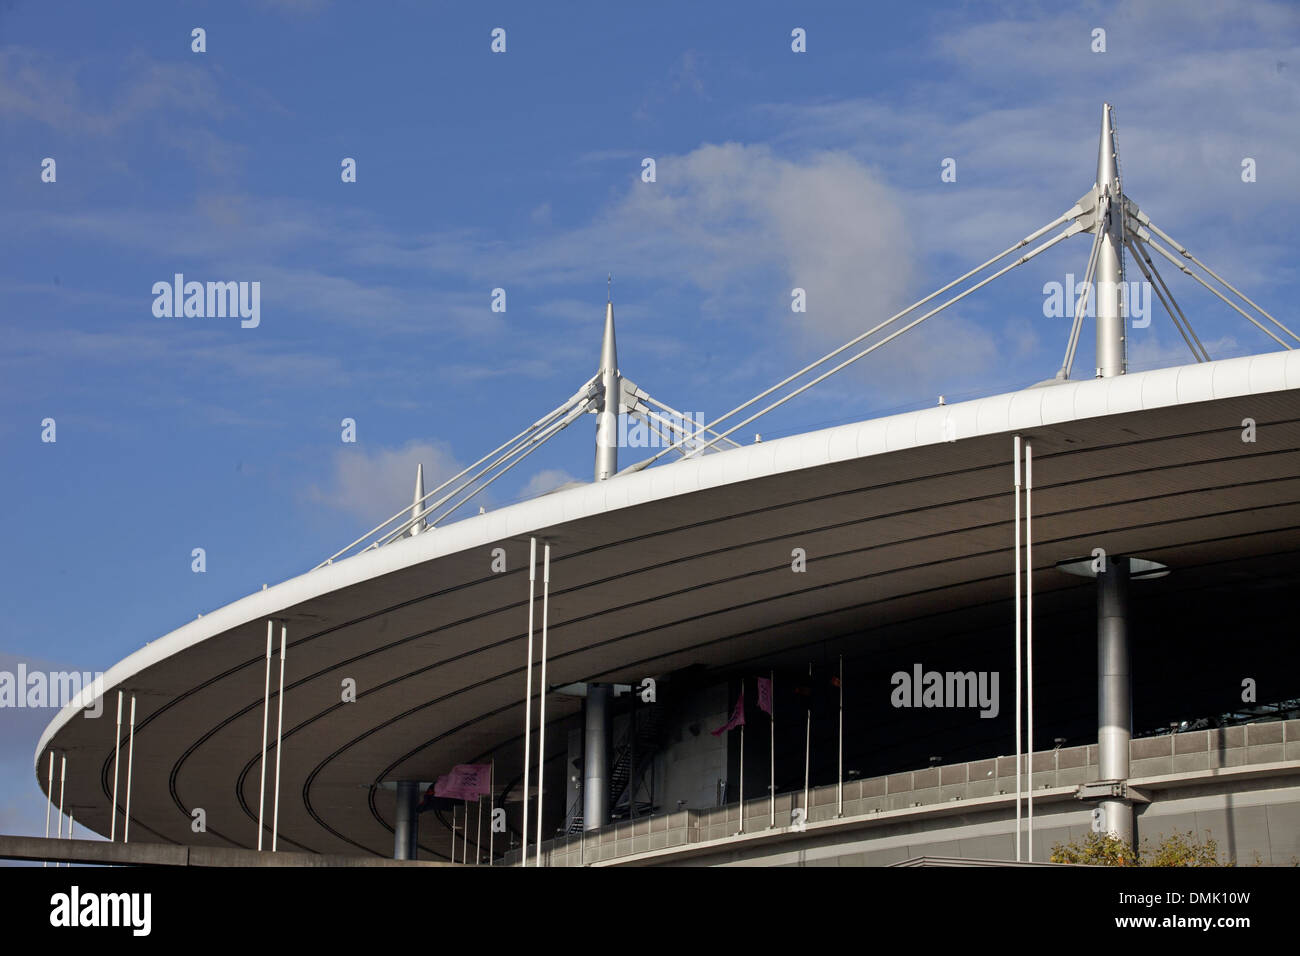 STADE DE FRANCE, THE BIGGEST STADIUM IN FRANCE, BUILT BETWEEN 1995 AND 1998 TO MEET THE NEEDS OF THE SOCCER WORLD CUP, LA PLAINE SAINT-DENIS QUARTER, SAINT-DENIS, SEINE-SAINT-DENIS (93), FRANCE - Stock Image